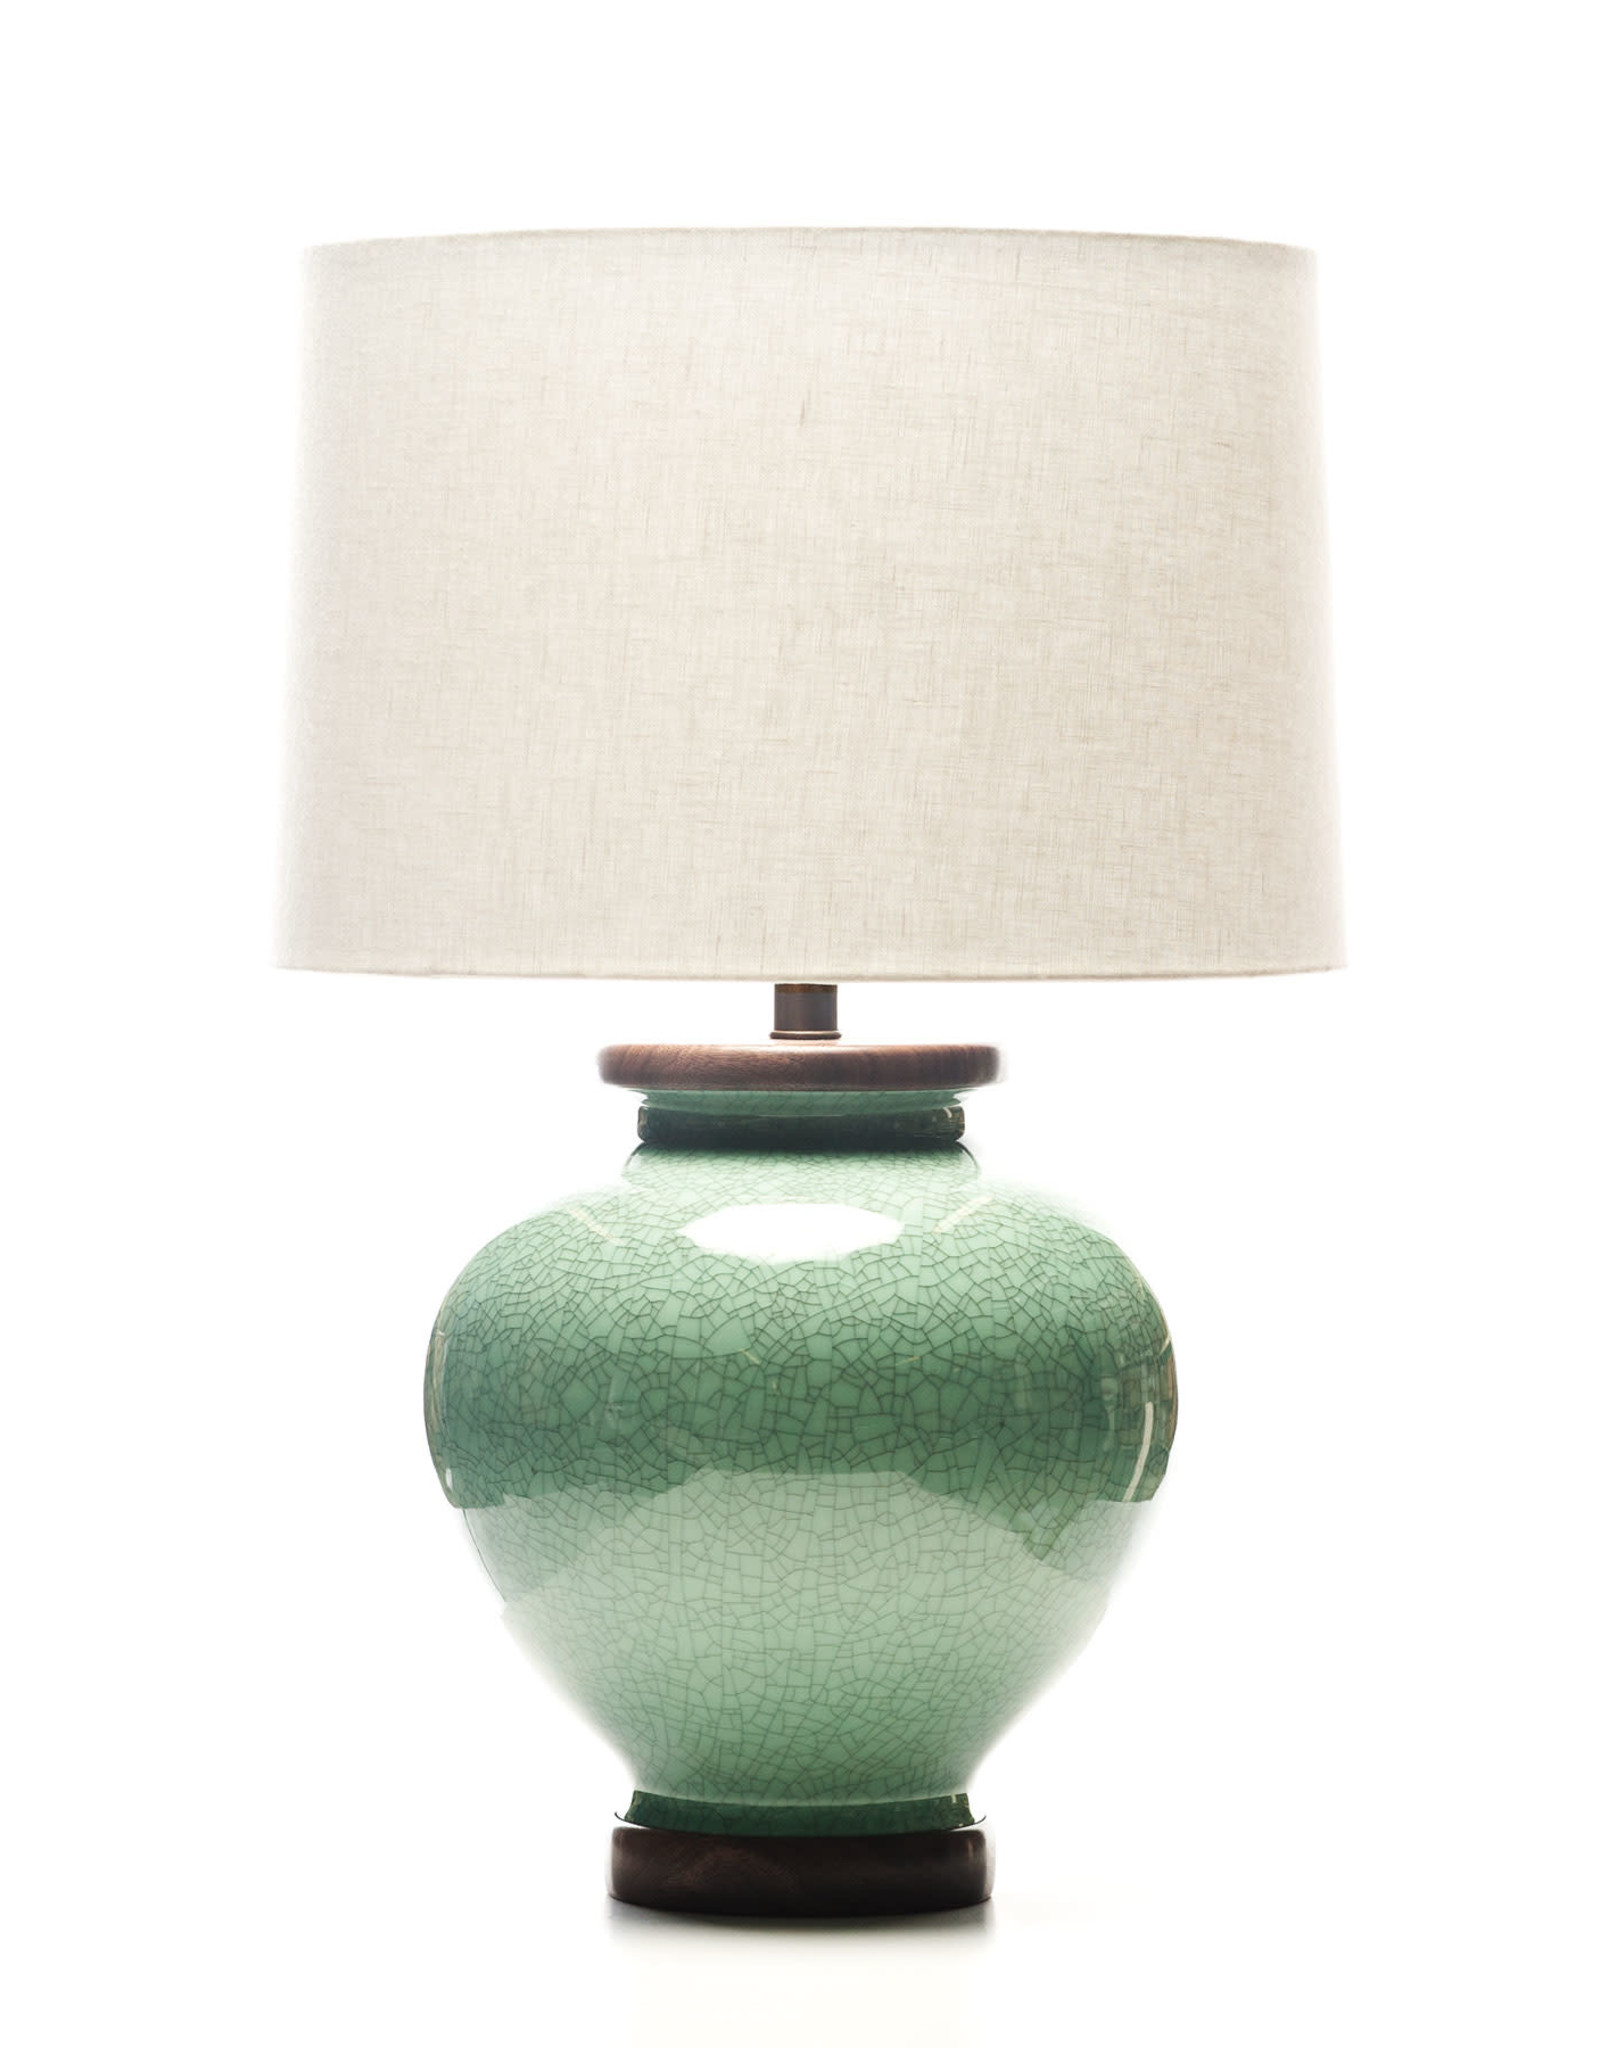 Lawrence & Scott Luca Porcelain Lamp in Aquamarine Crackle with Walnut Base